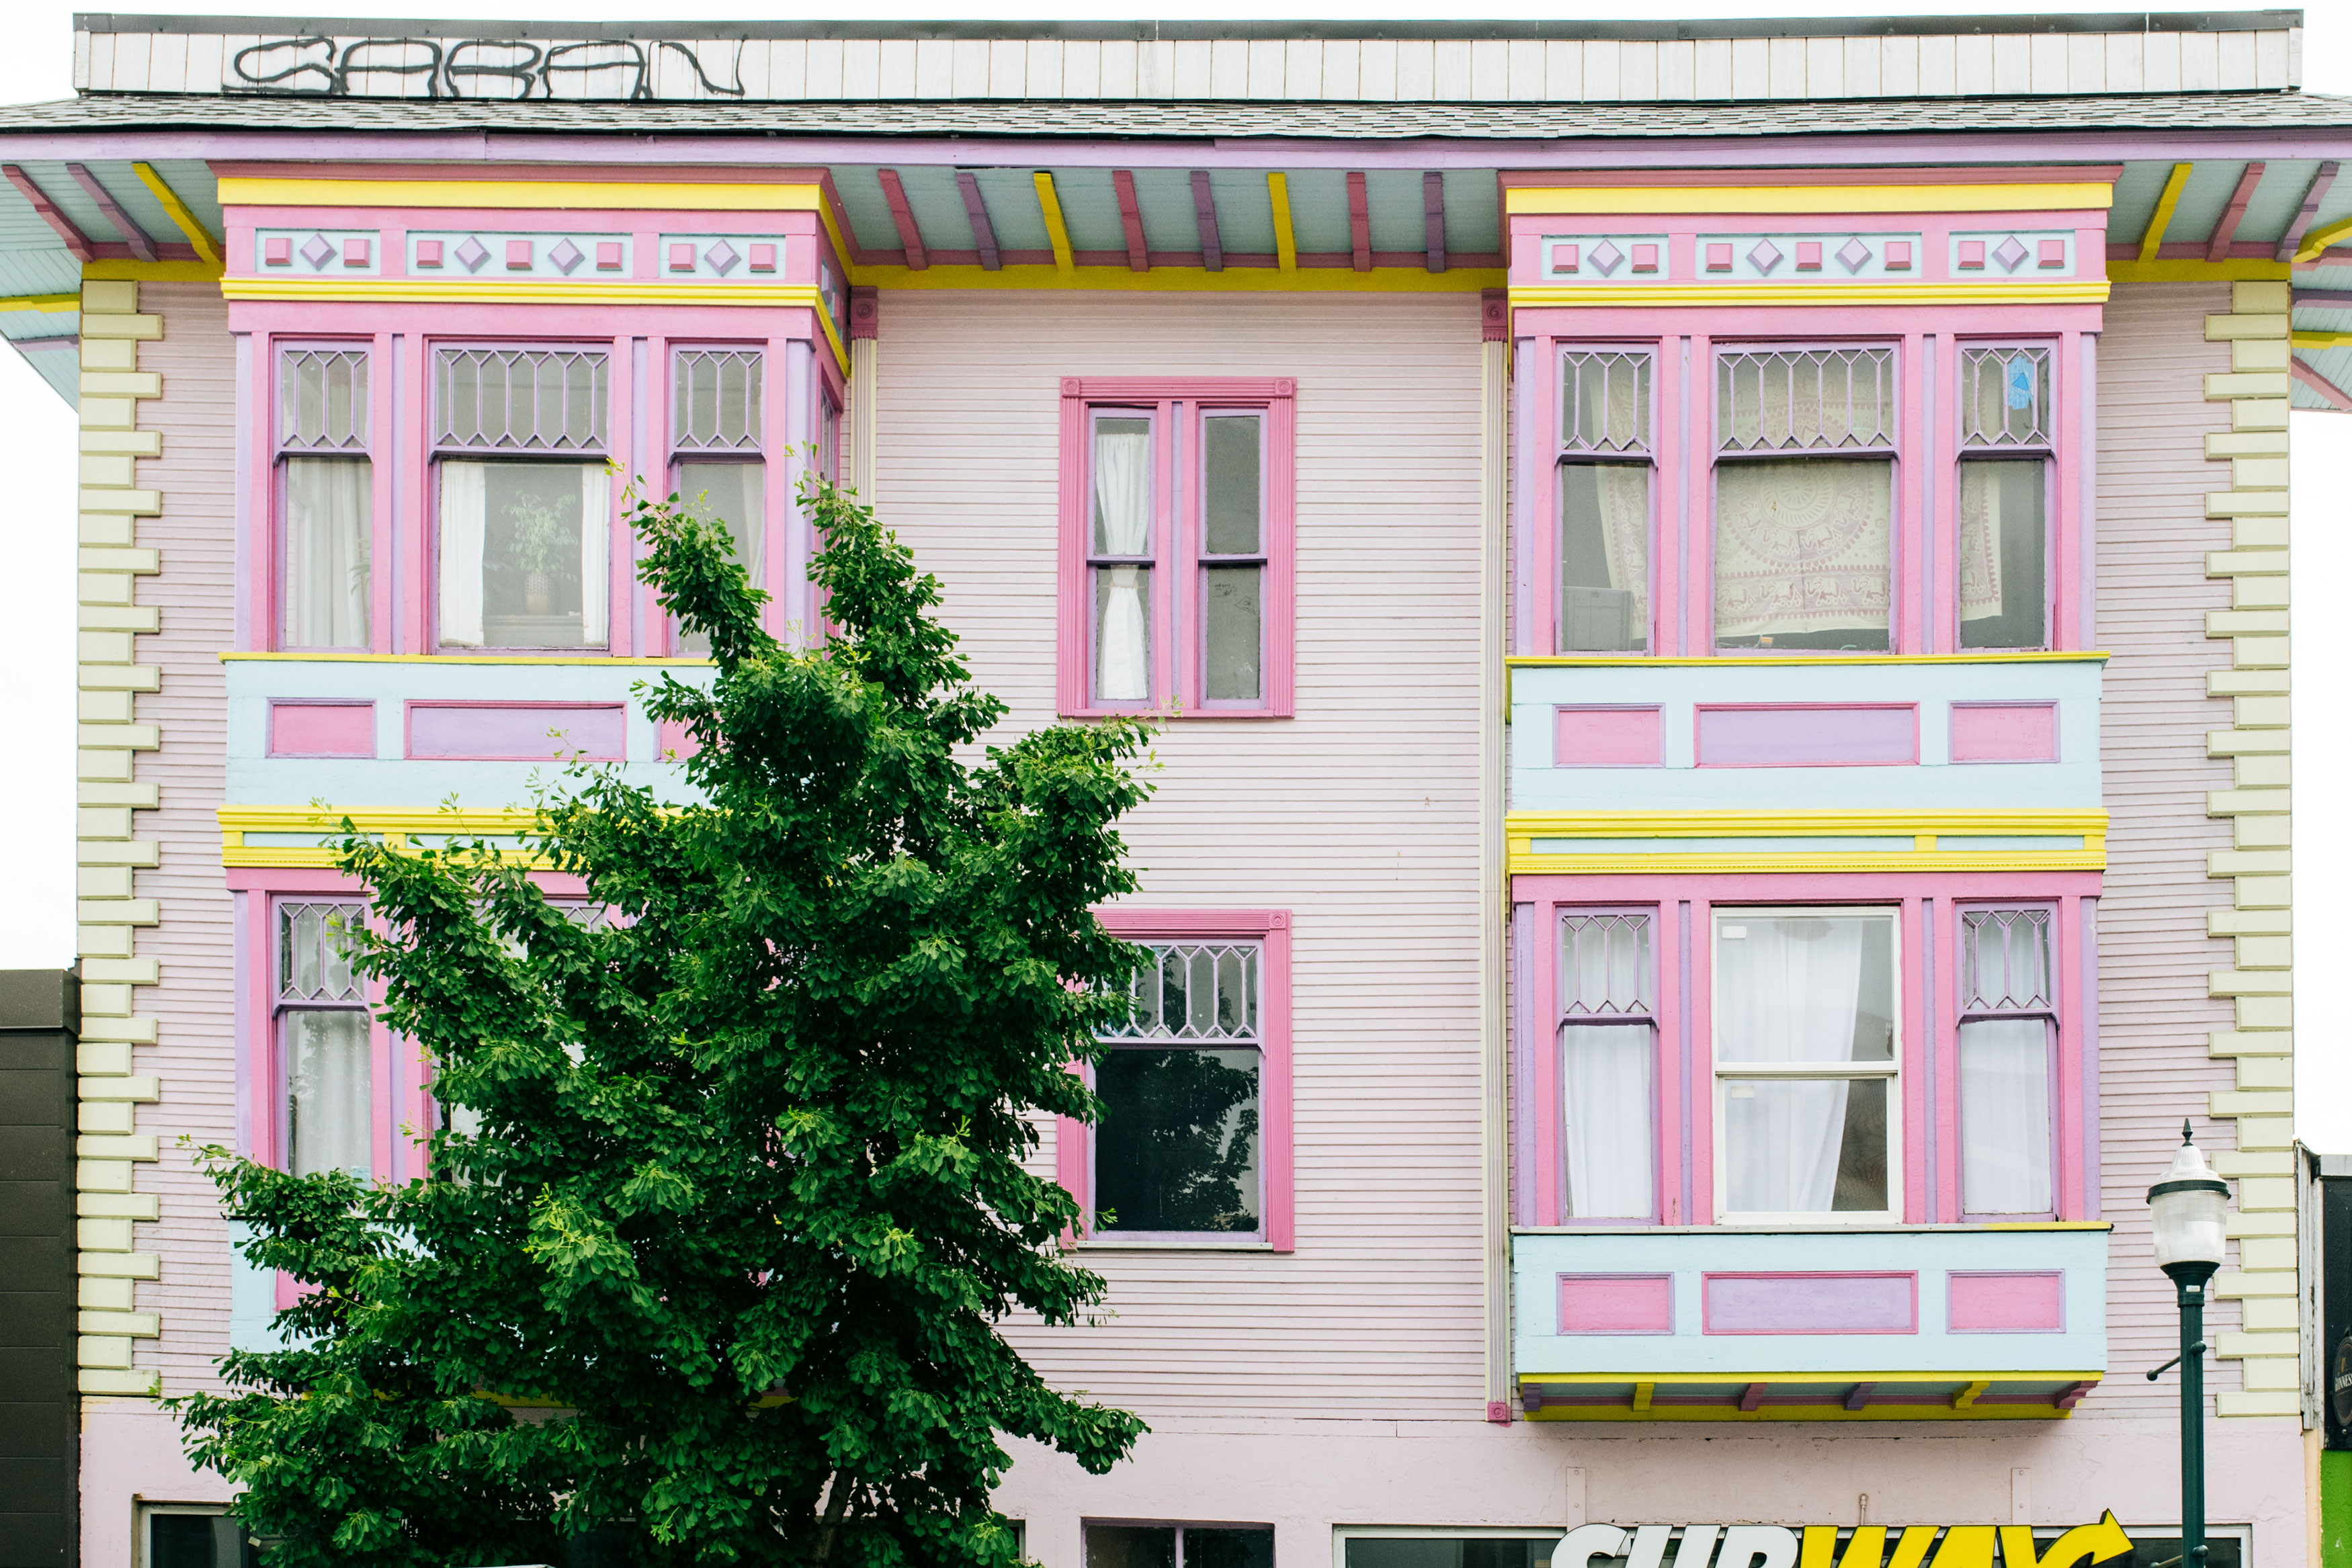 A pink apartment building with two-story bay windows on either side. The trim is colorful, with darker pink, light blue, and yellow elements.